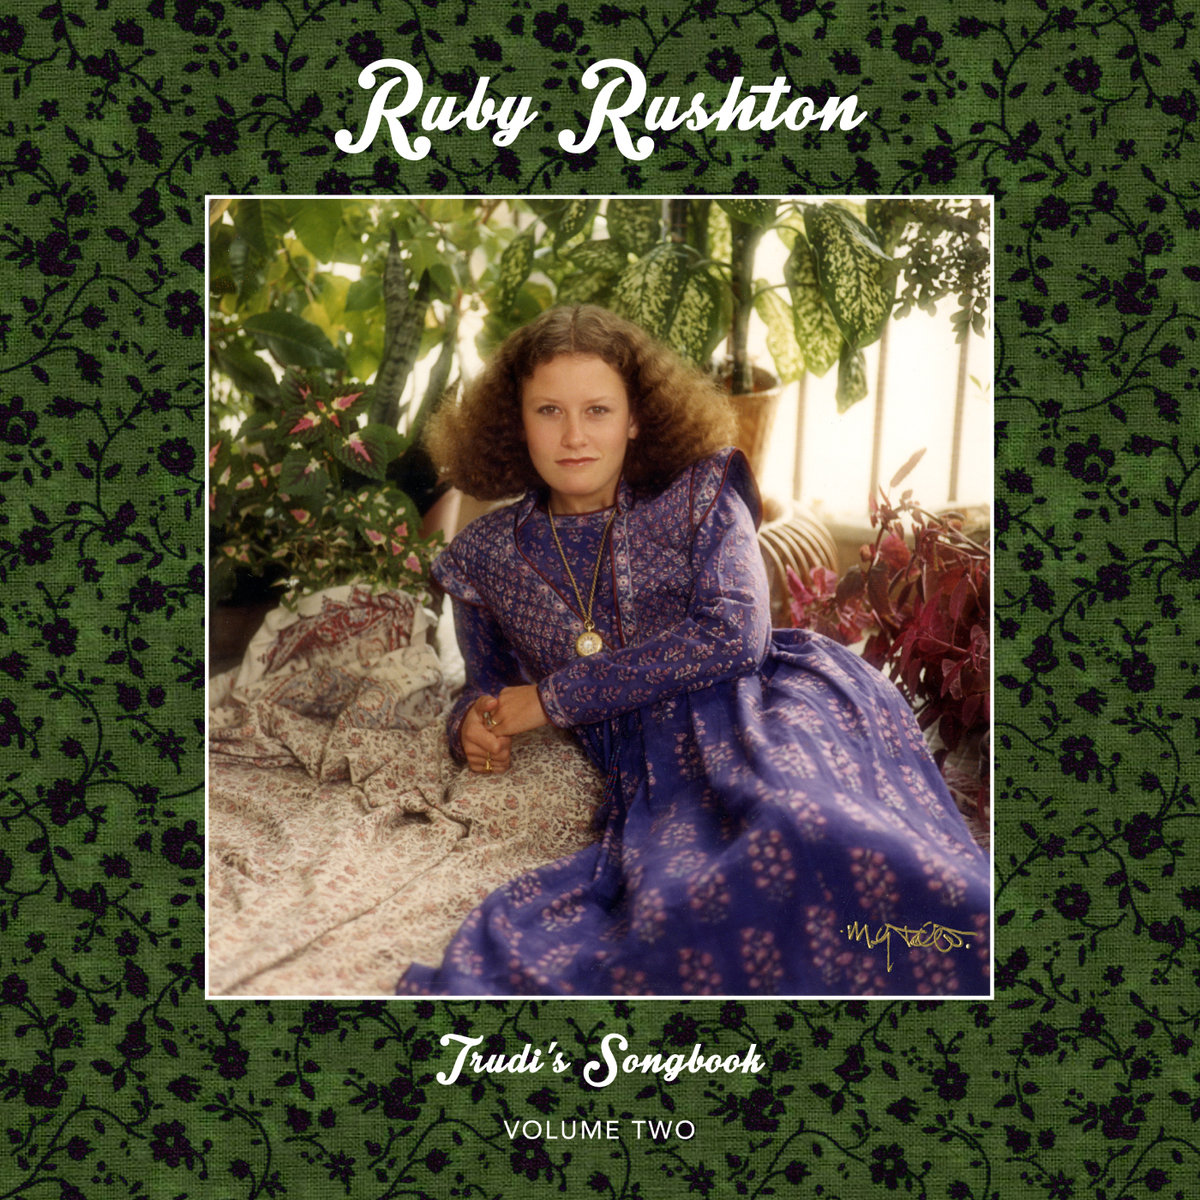 Ruby Rushton – Trudi's Songbook volume 2